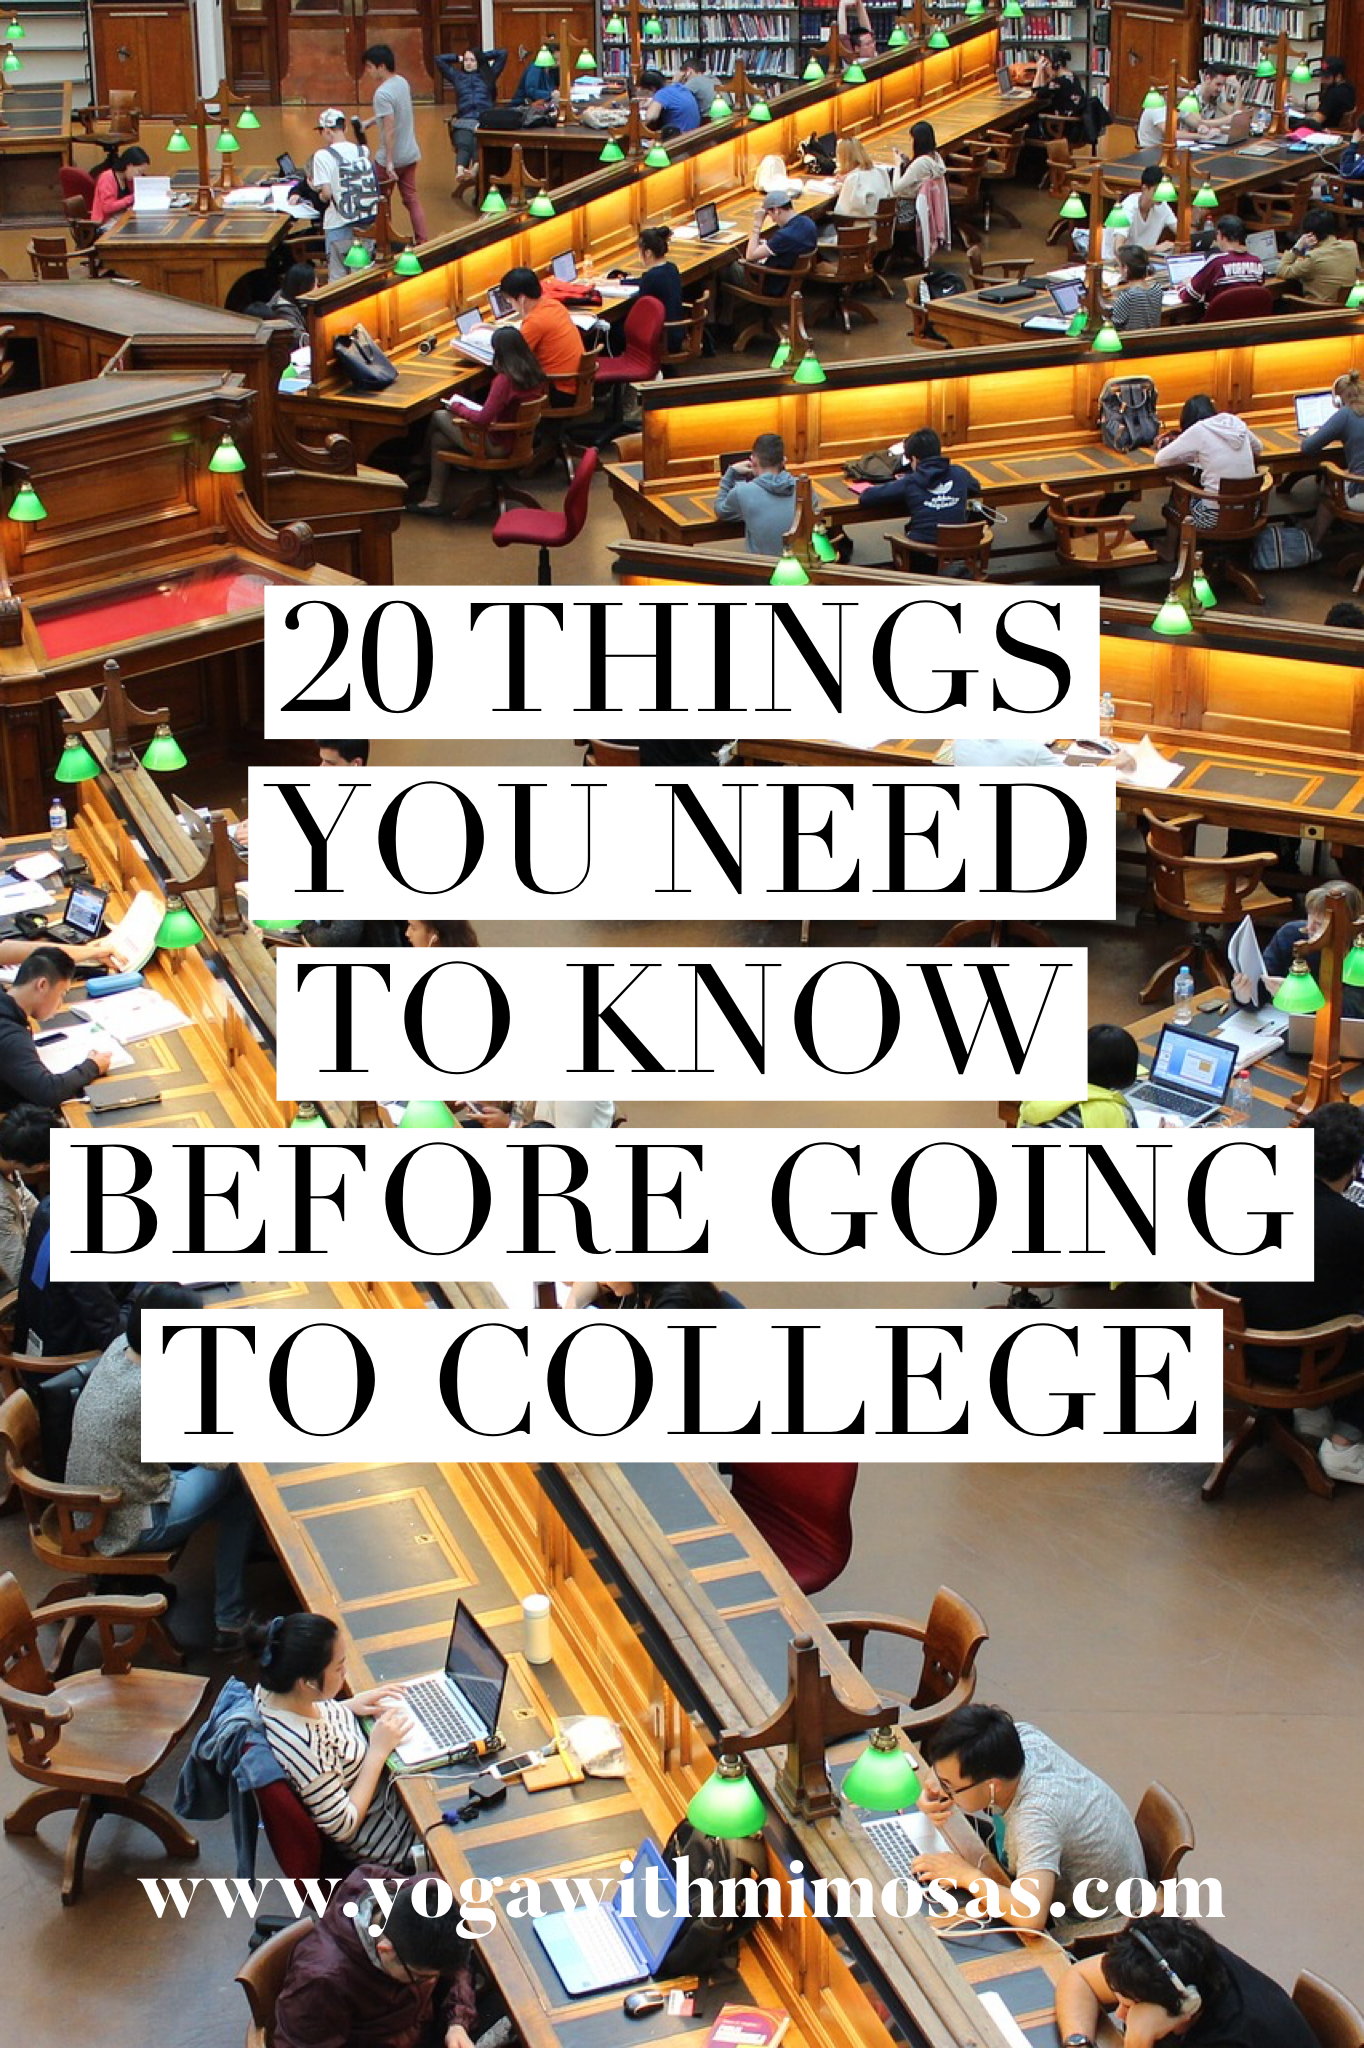 20 Things You Need to Know Before Going to College